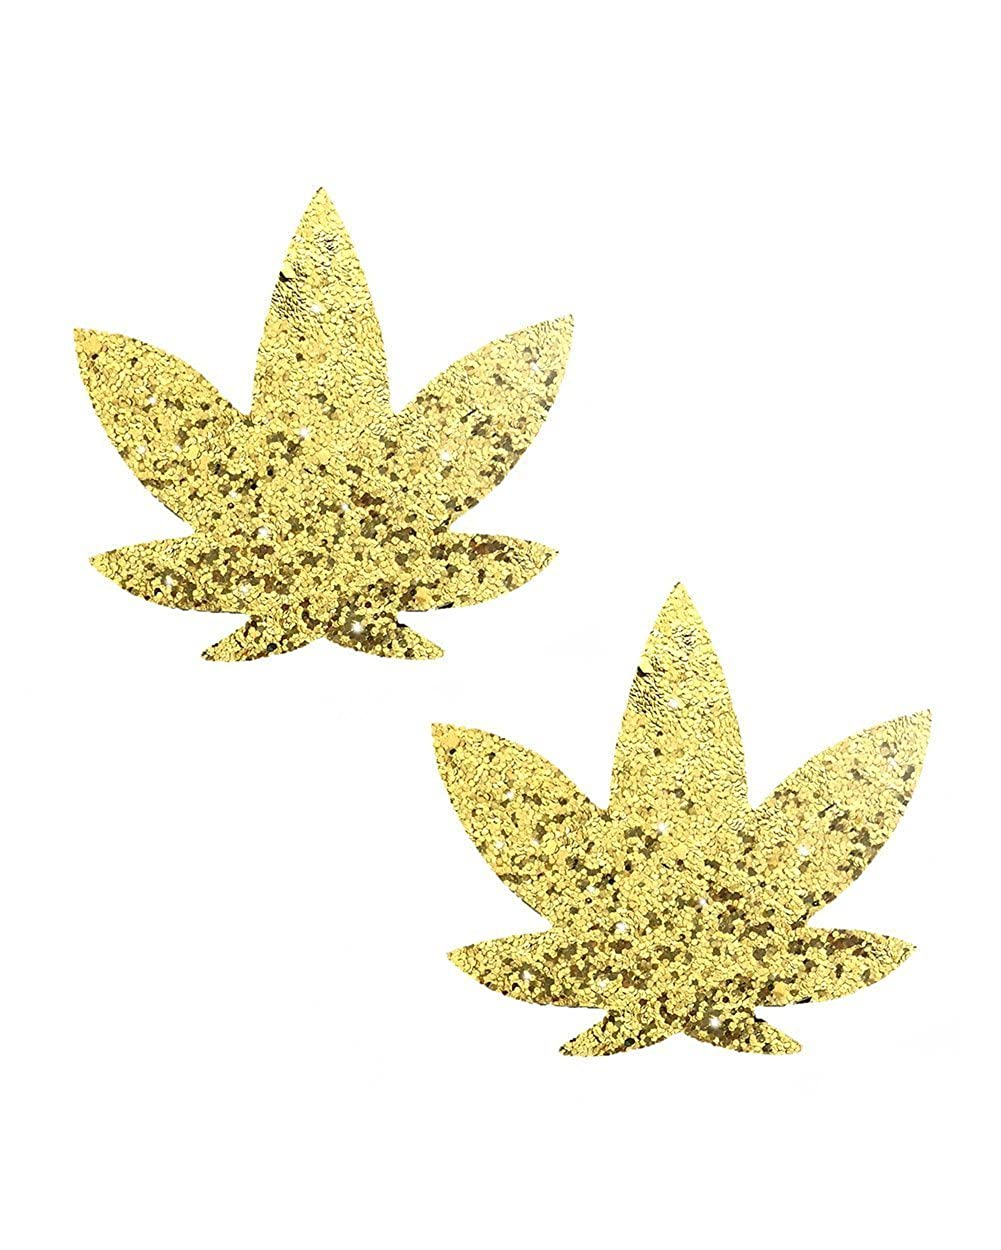 iHeartRaves Pot Leaf Weed Rave Pasties (Set of 2 Pasties) psty-nva-chnwd